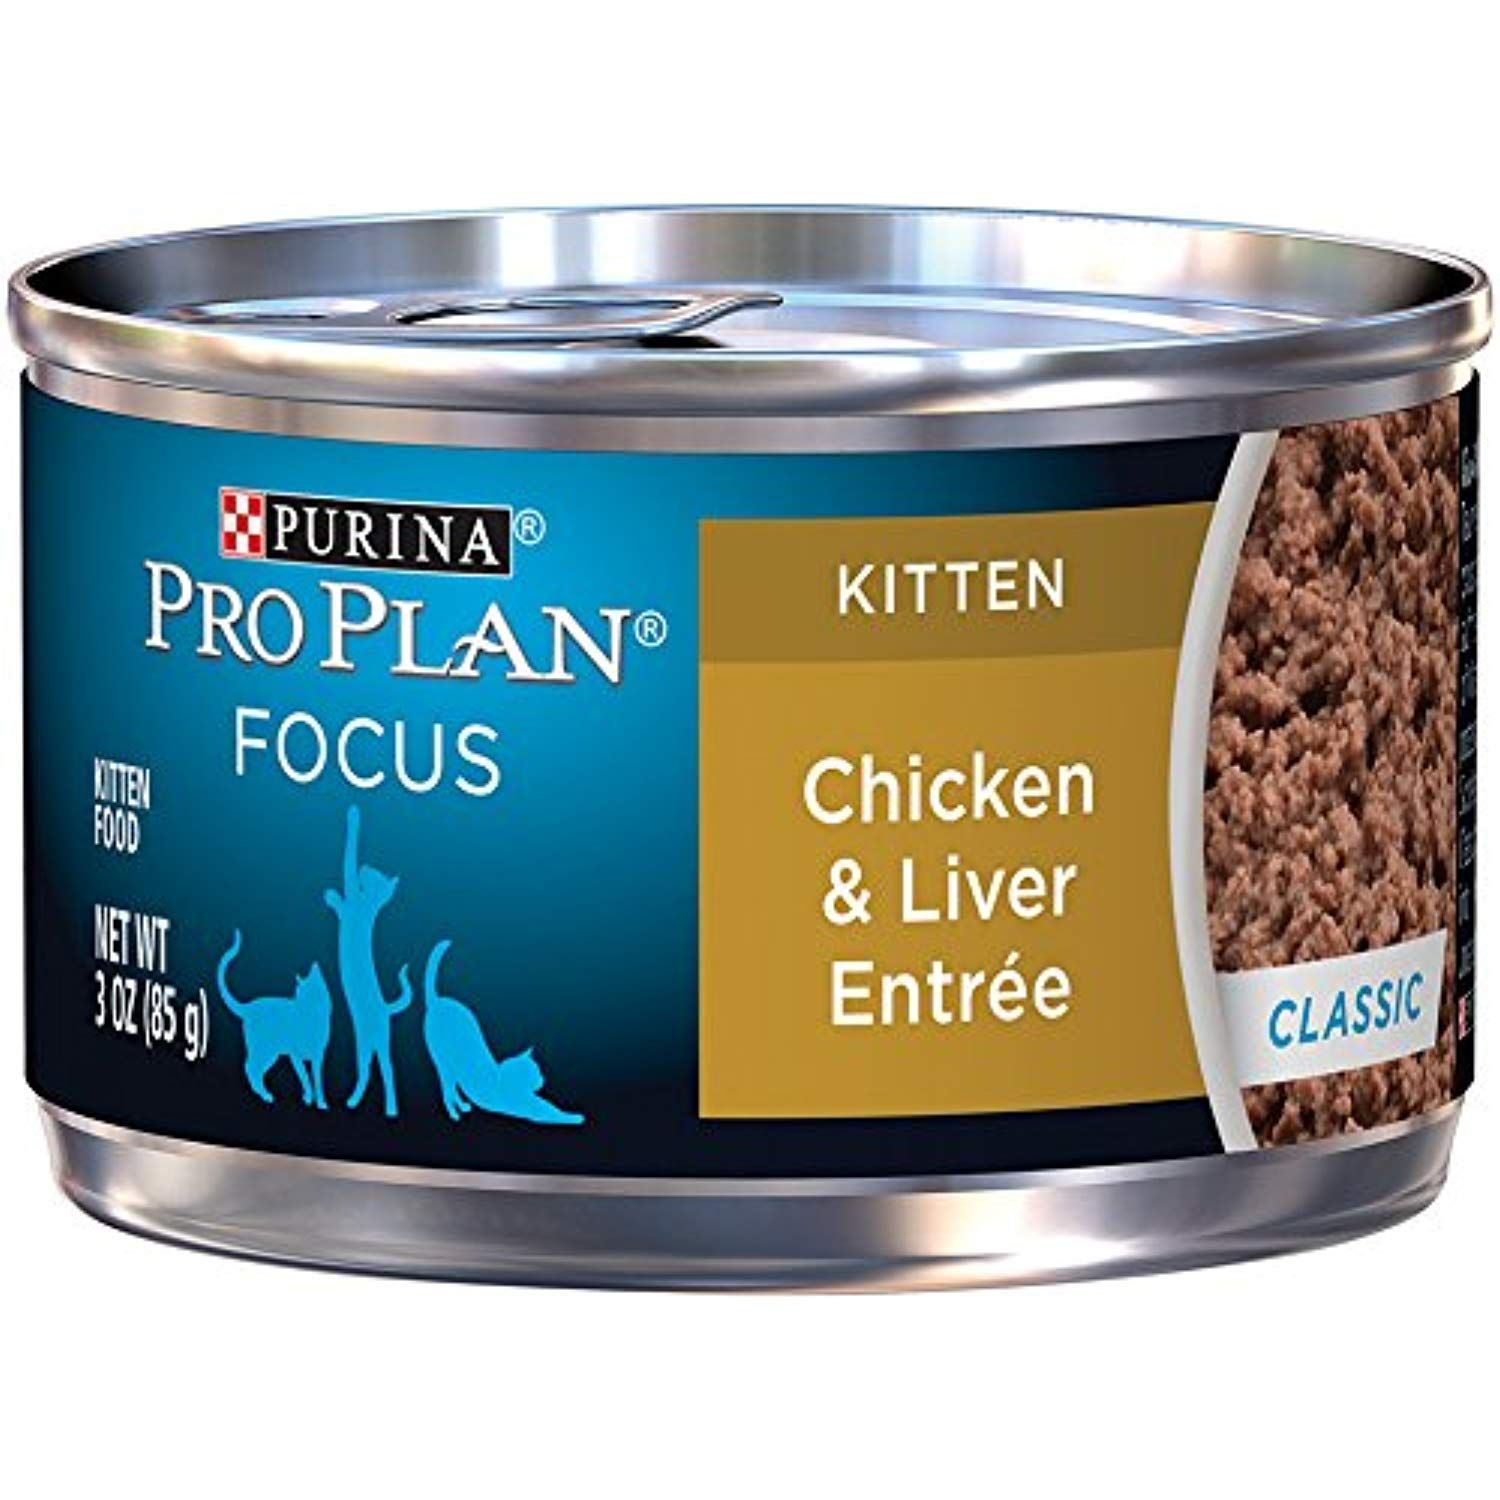 Purina Pro Plan Wet Cat Food Focus Kitten Chicken And Liver Entre 3 Ounce Can Pack Of 24 You Can Get Ad Canned Cat Food Cat Food Reviews Purina Pro Plan